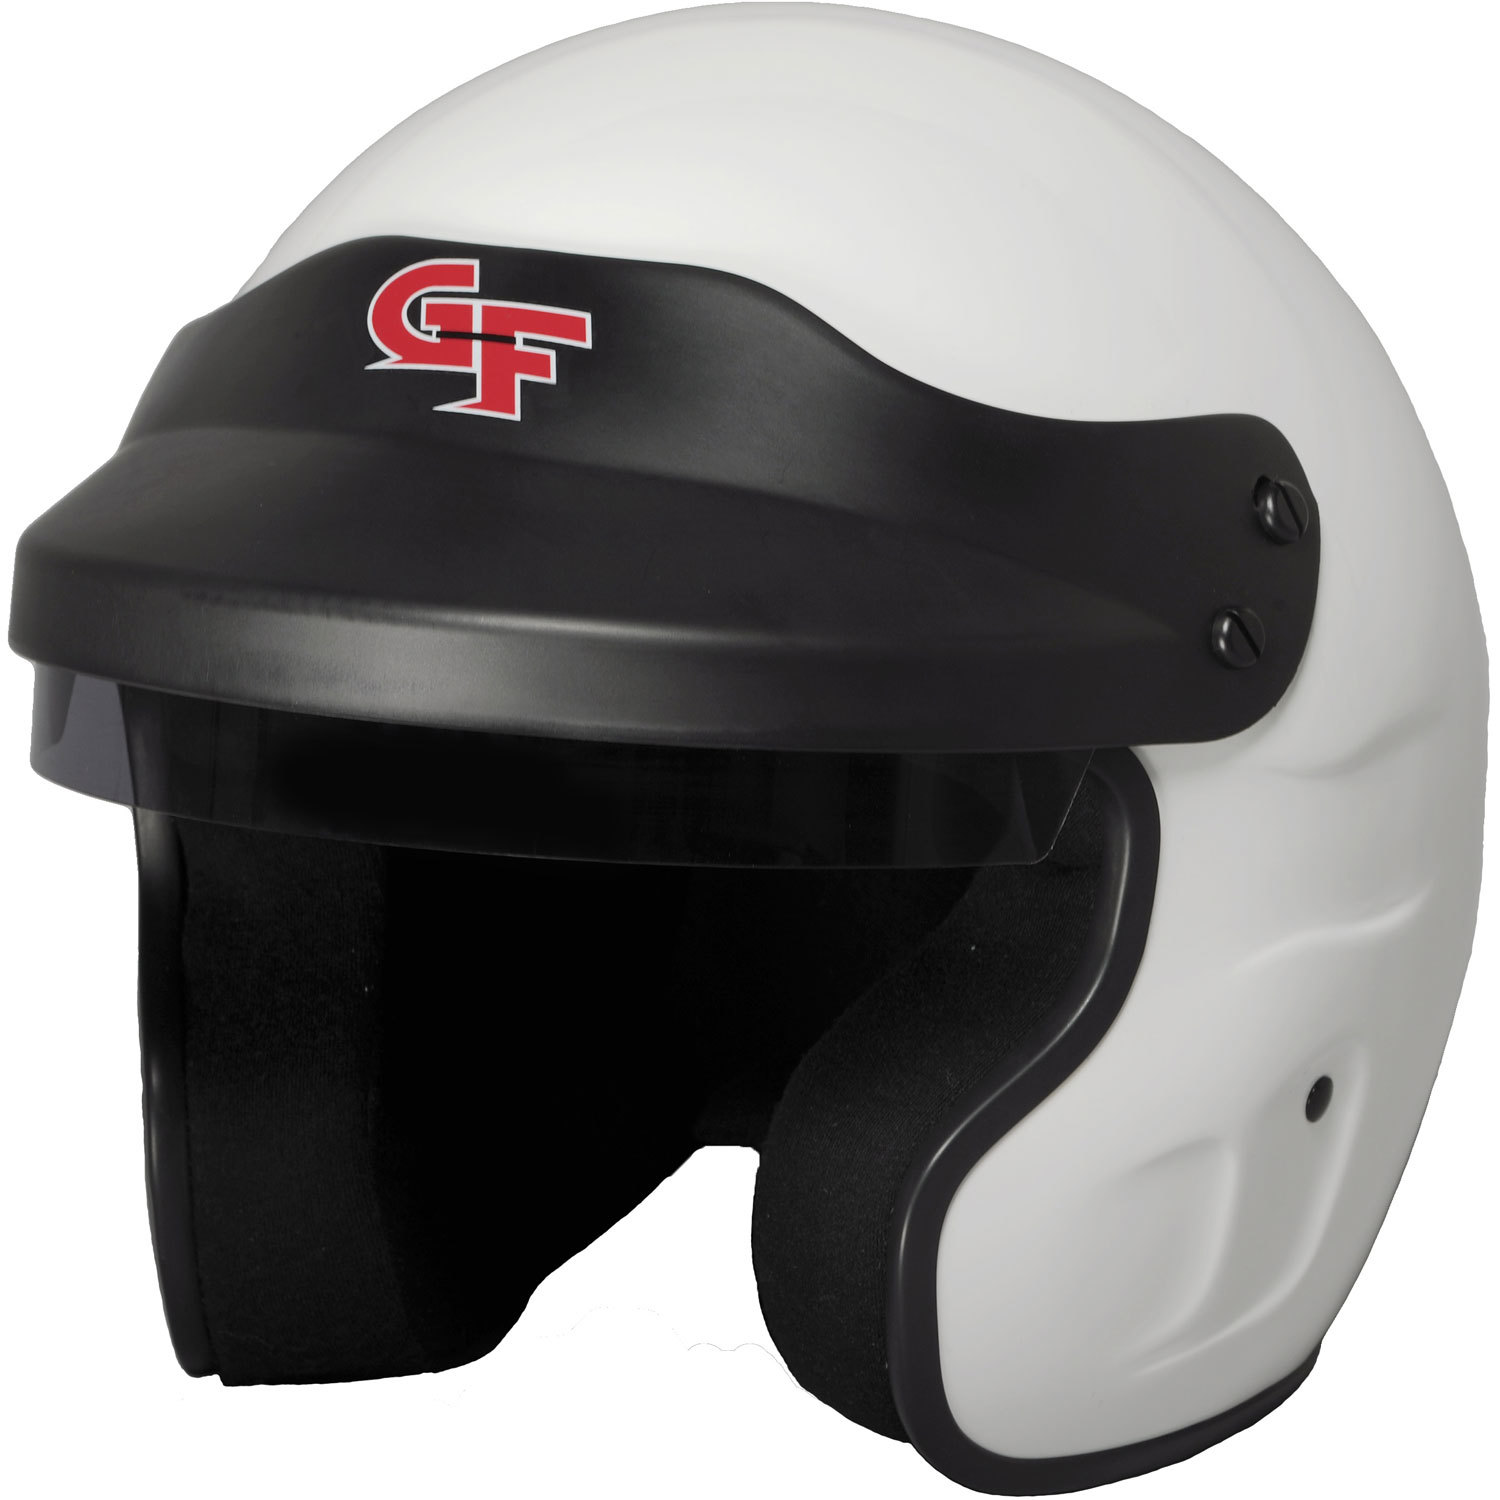 G-Force 3121SMLWH Helmet, GF1, Open Face, Snell SA2015, Head and Neck Support Ready, White, Small, Each